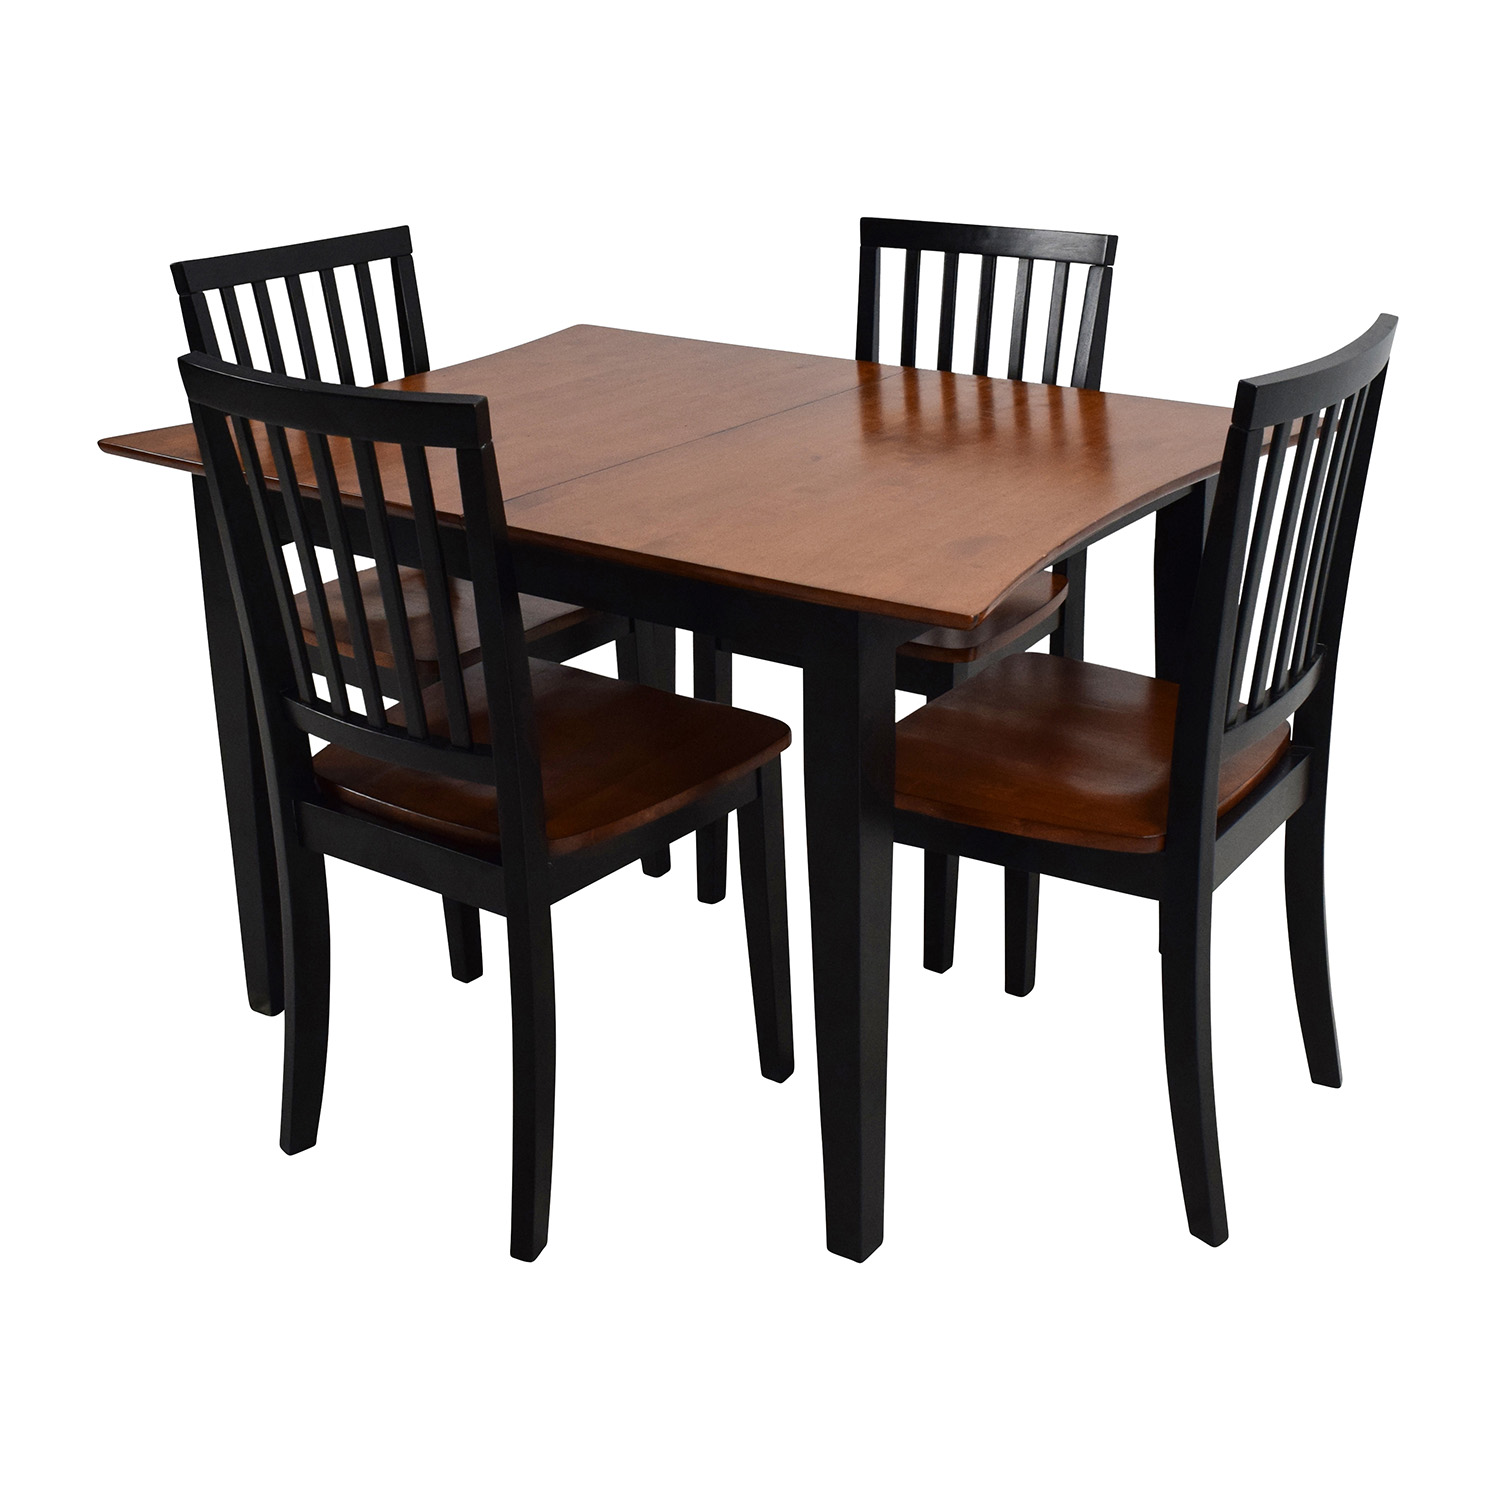 Cheap Dining Tables And Chairs 56 Off Bob 39s Discount Furniture Bob 39s Furniture